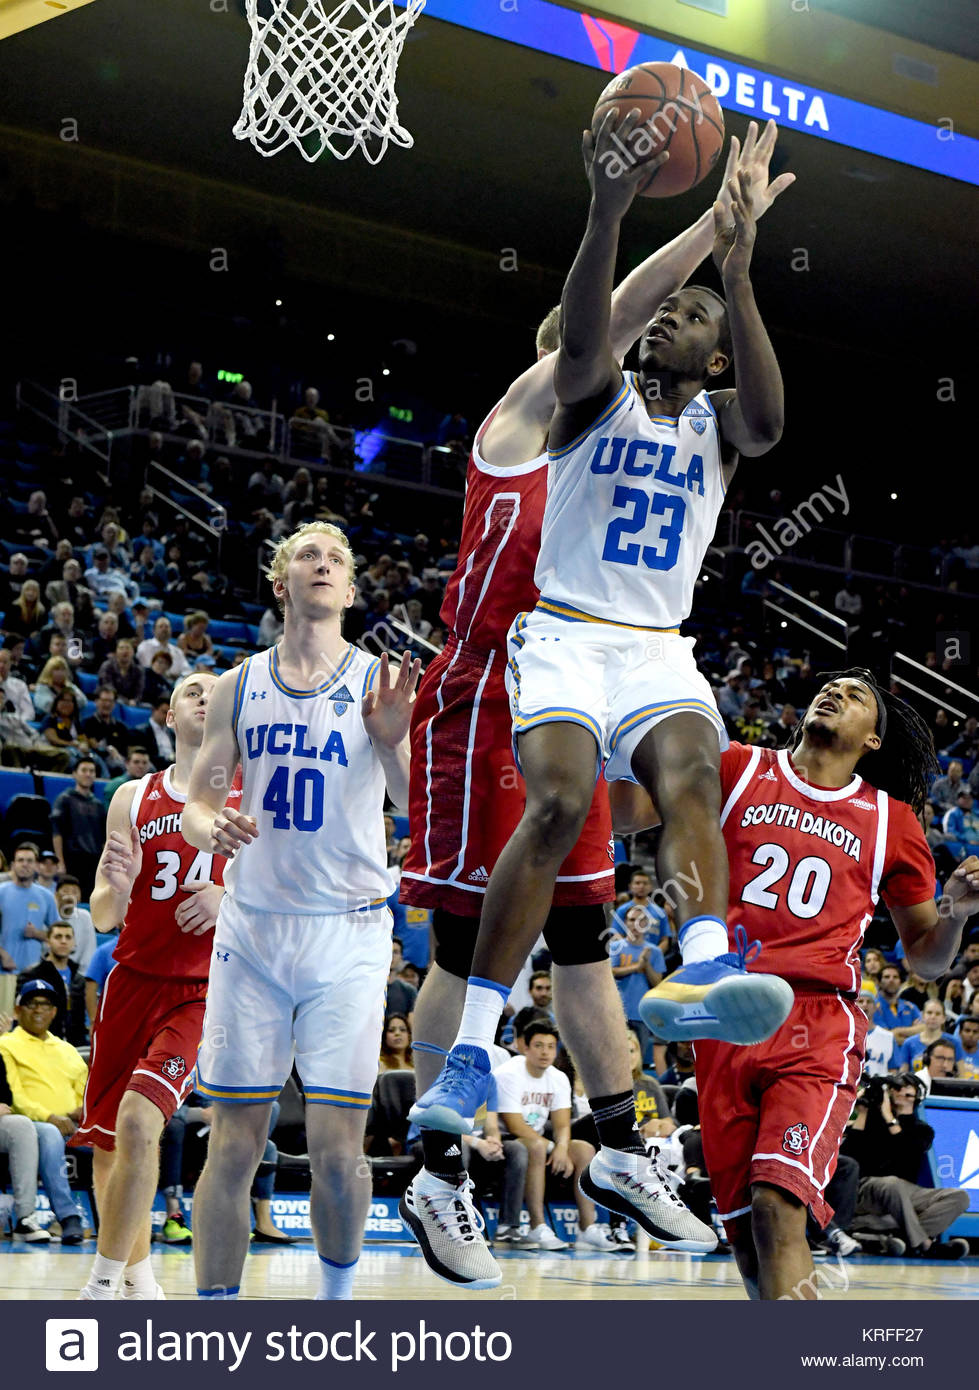 Westwood, California, USA. 19th Dec, 2017. UCLA Bruins guard Prince Ali (23) drives to the basket against the South - Stock Image